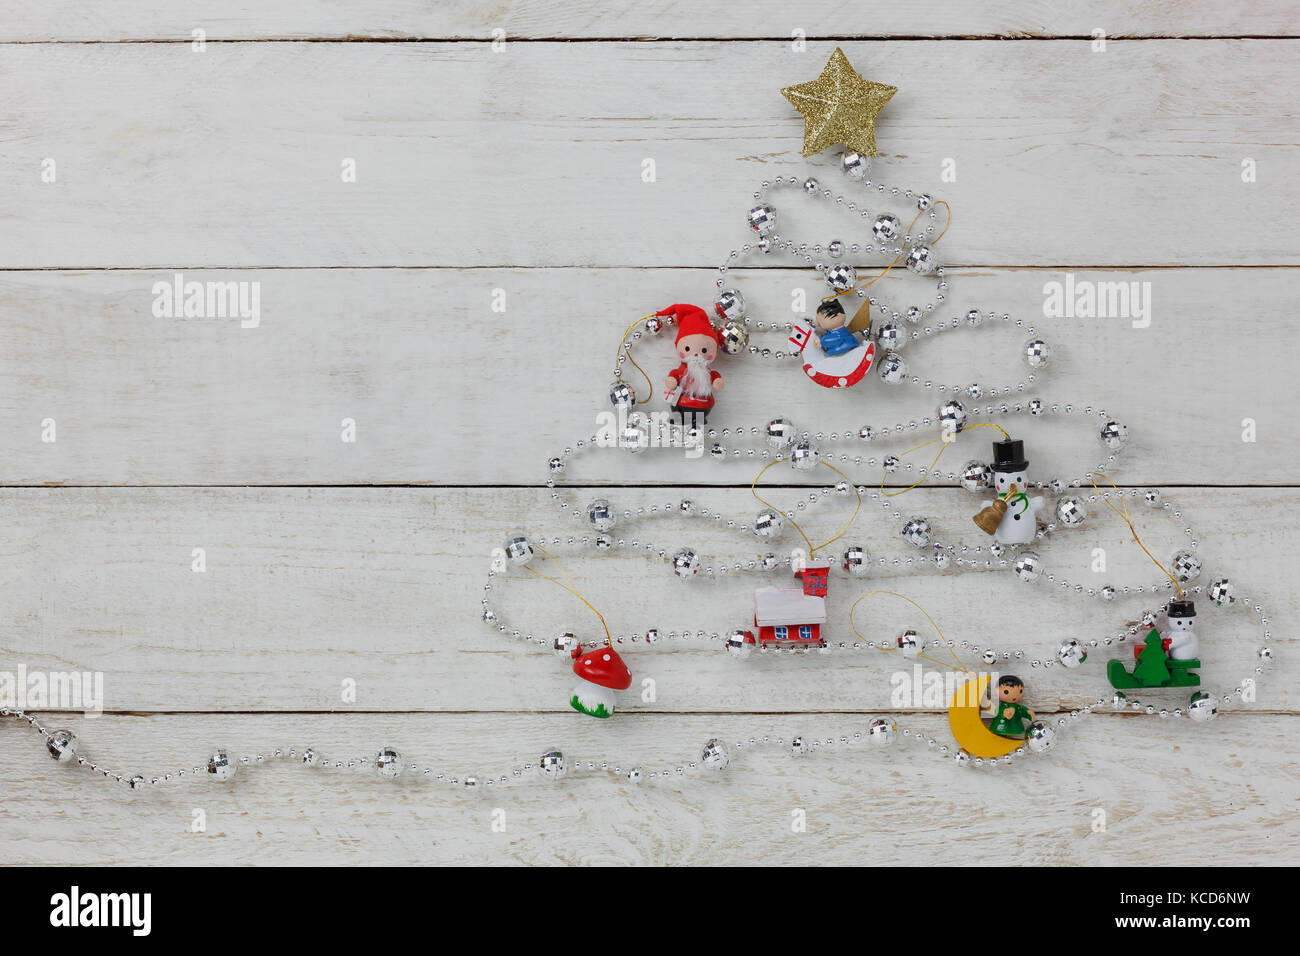 Aerial View Of Merry Christmas Tree With Decorations Concept Stock